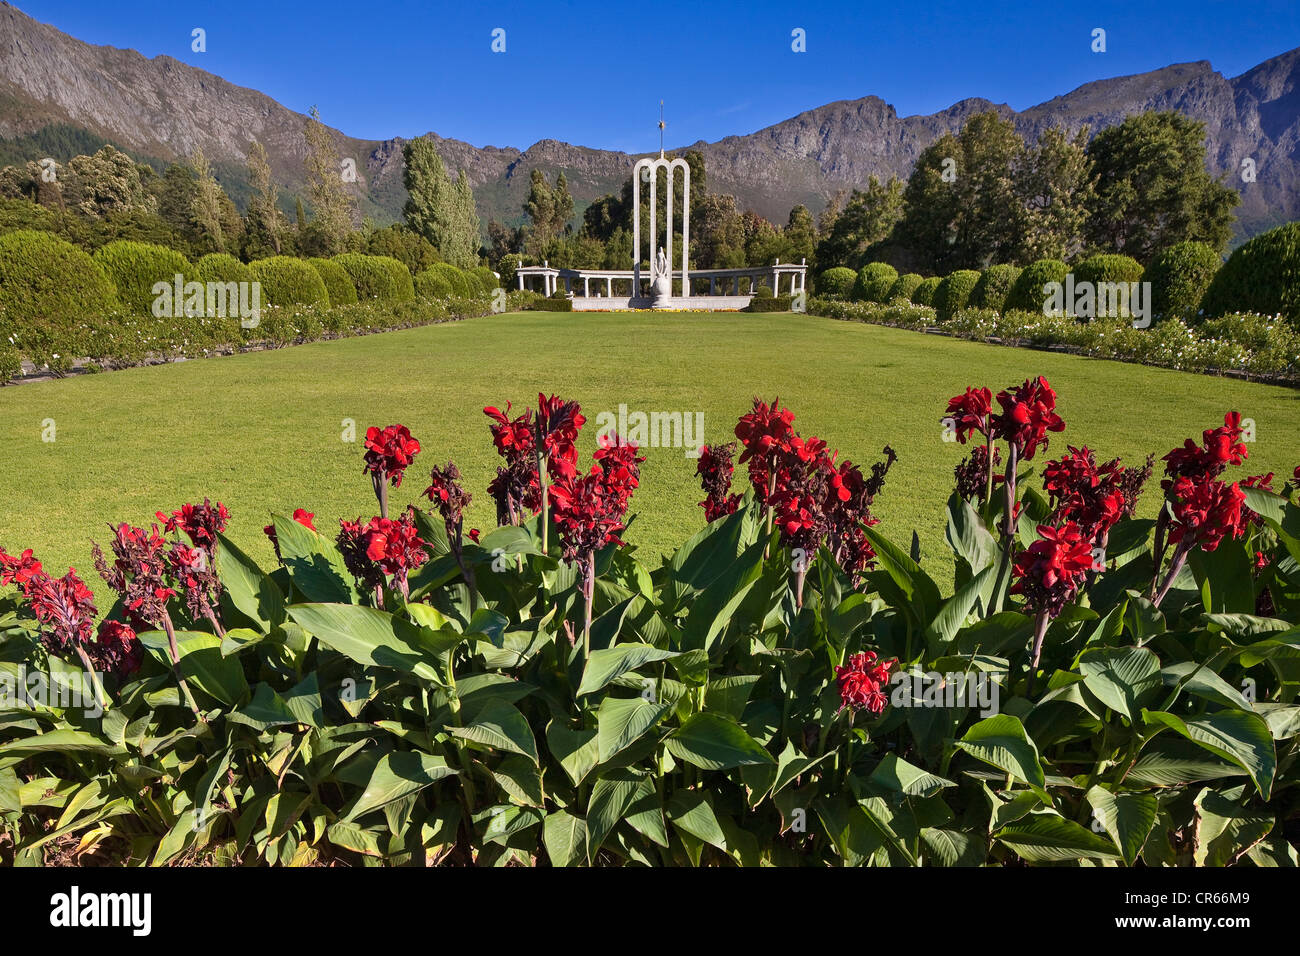 South Africa, Western Cape, Franschhoek, Huguenot Monument of 1948, created in honour of the influence of French - Stock Image